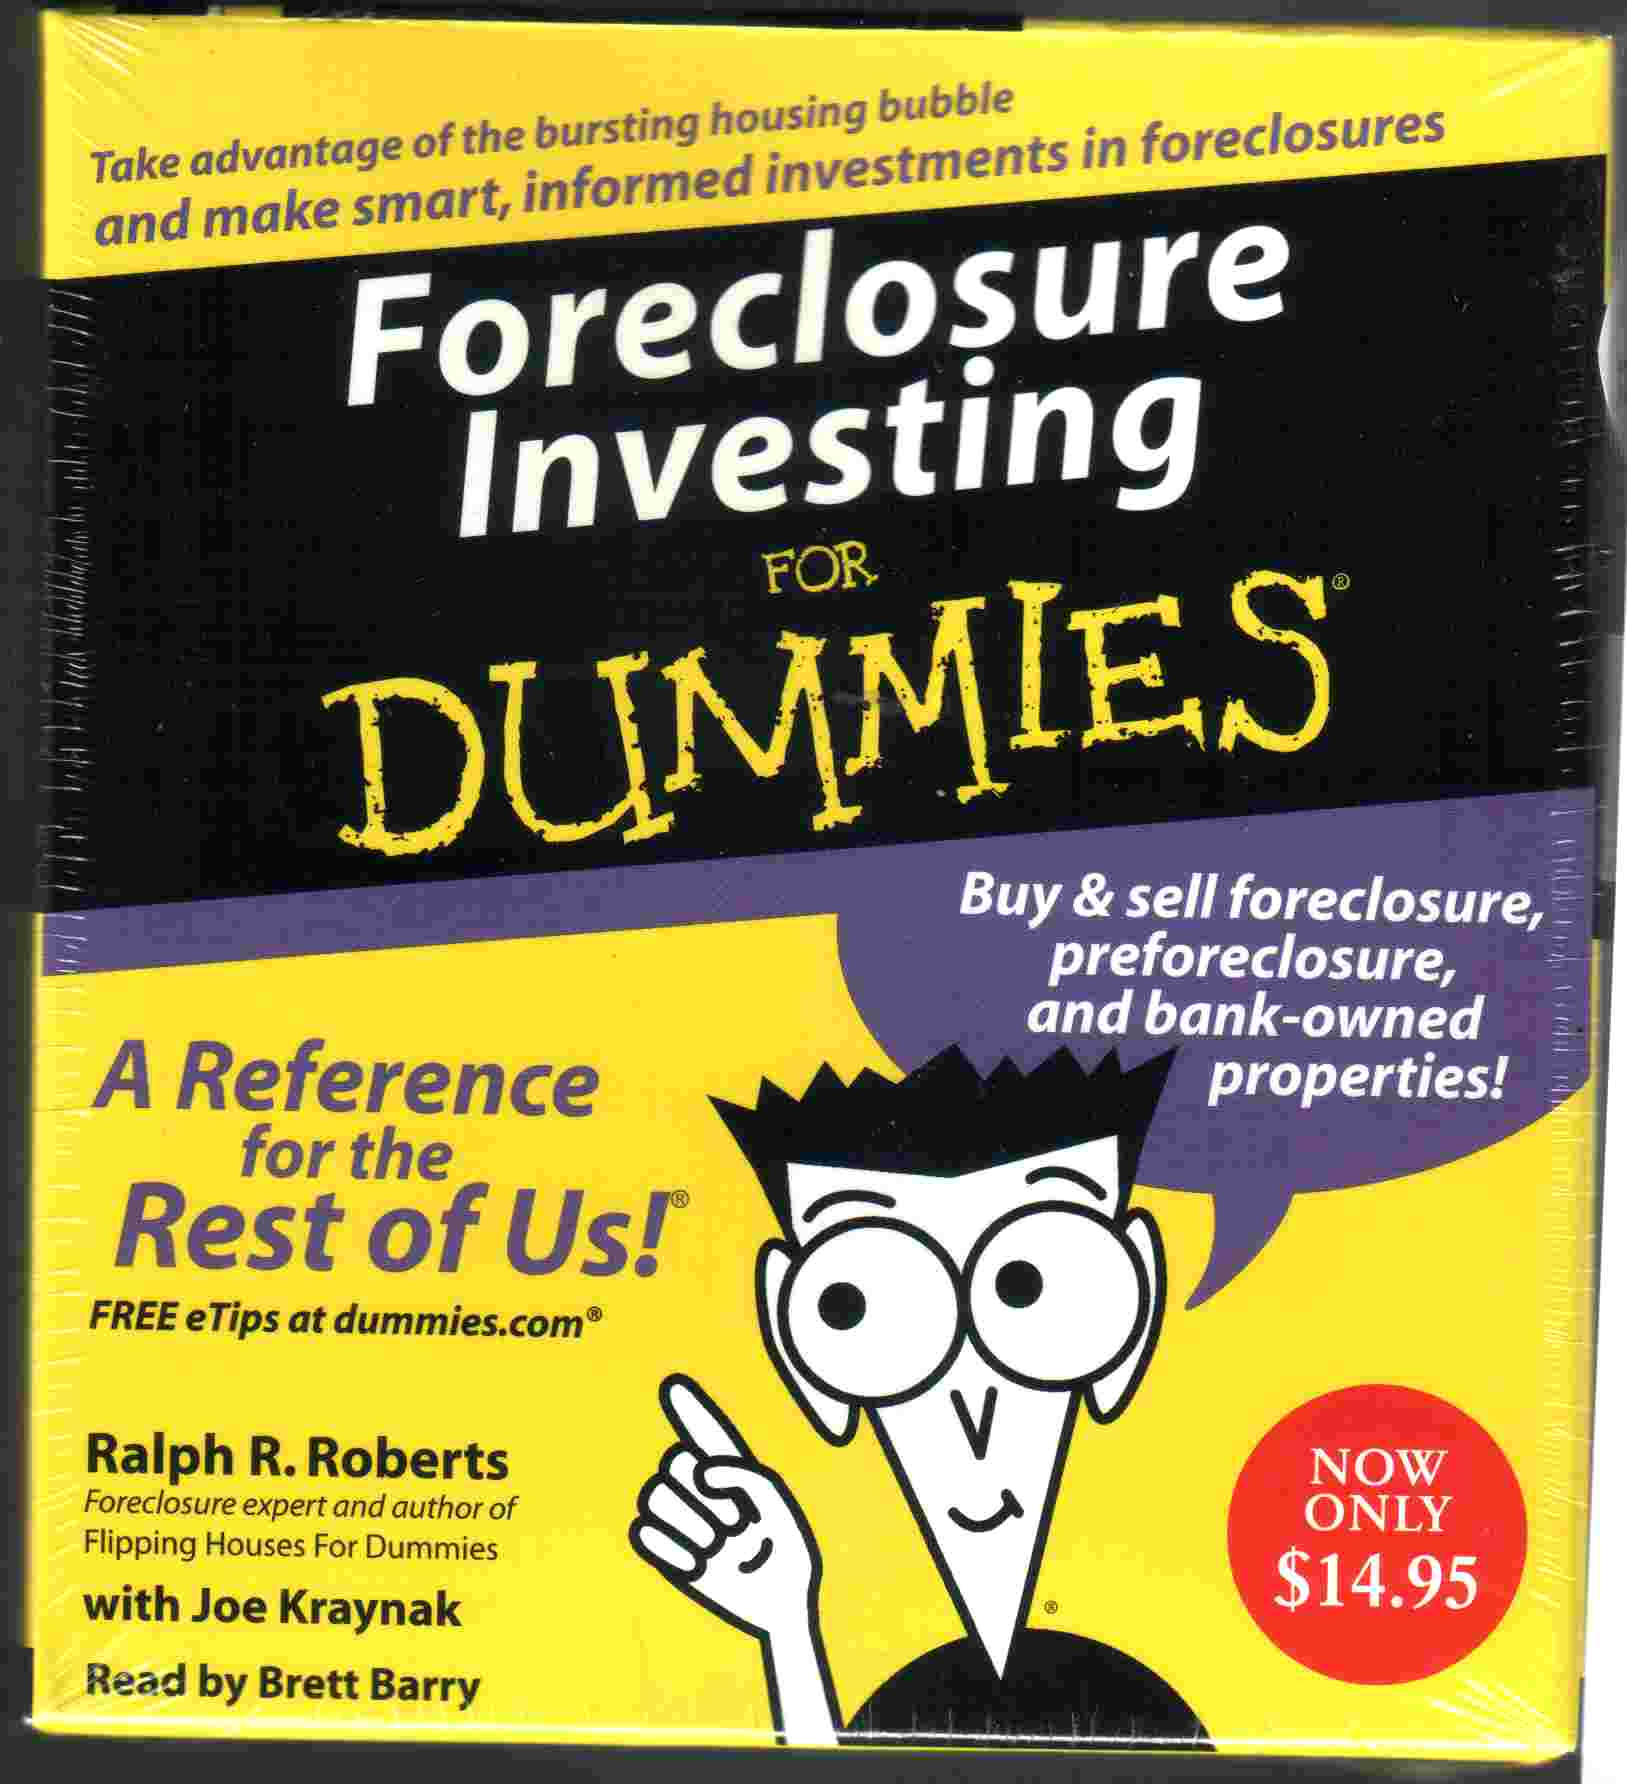 FORECLOSURE INVESTING FOR DUMMIES by Ralph R. Roberts